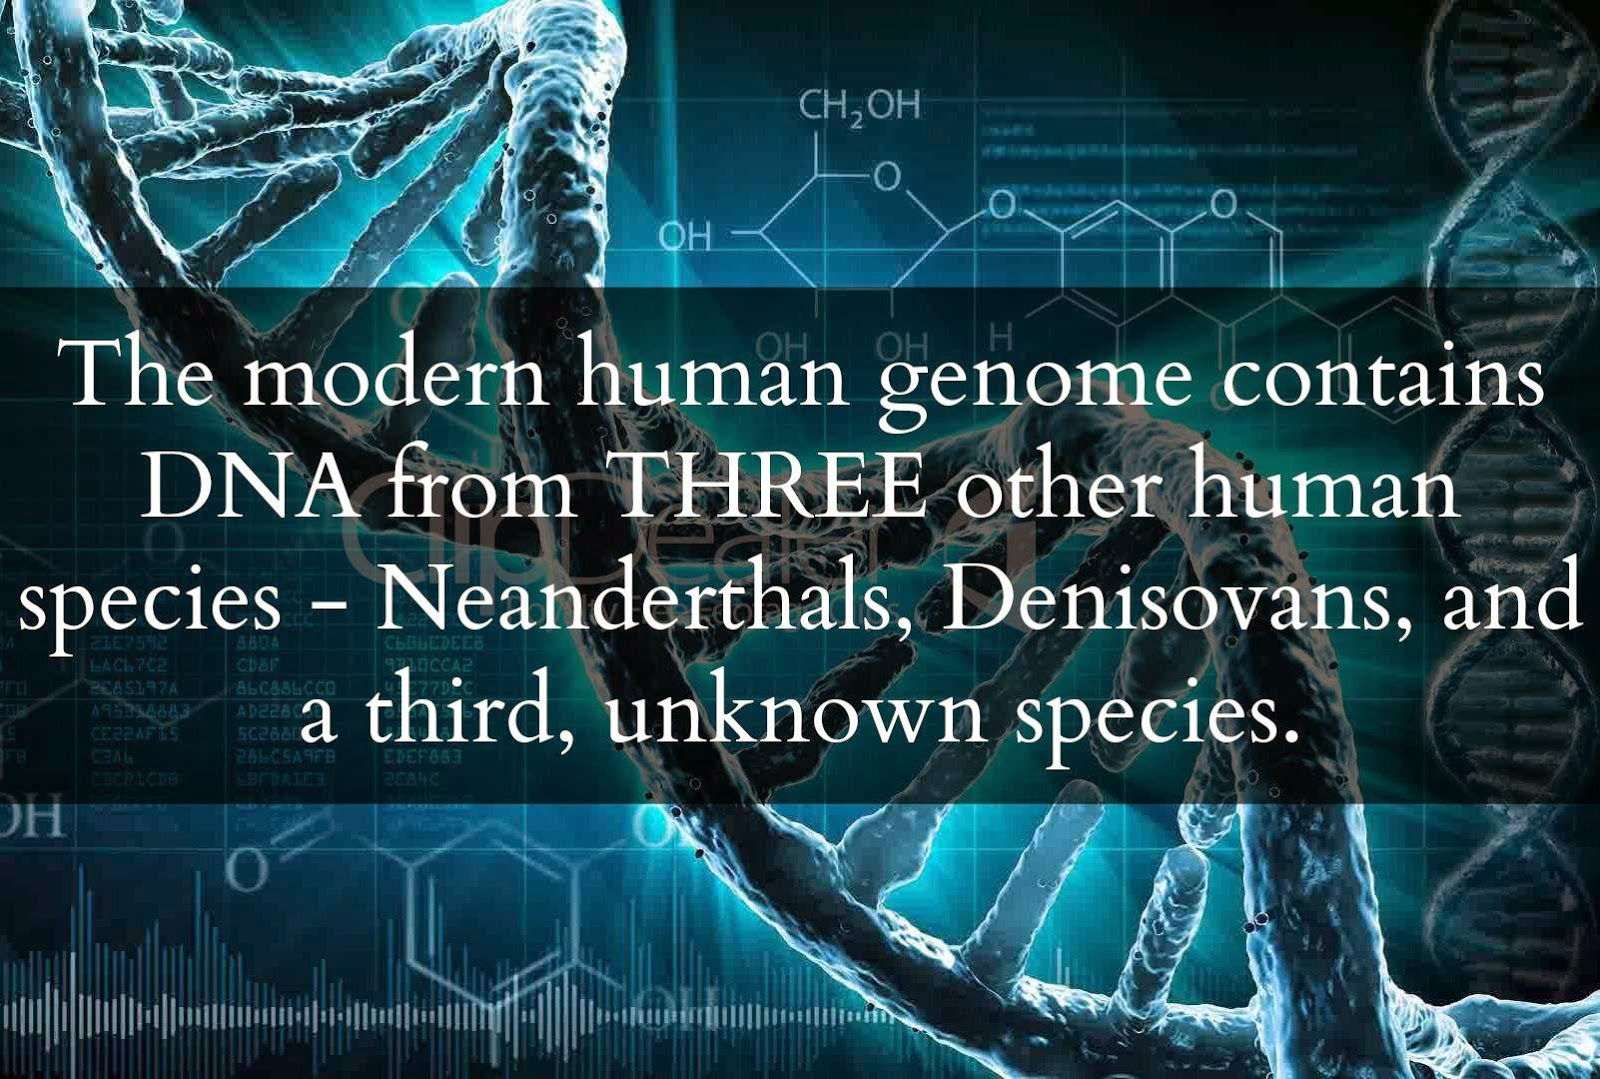 Scientists Just Announced That The Human Genome Contains DNA From An Unknown Species